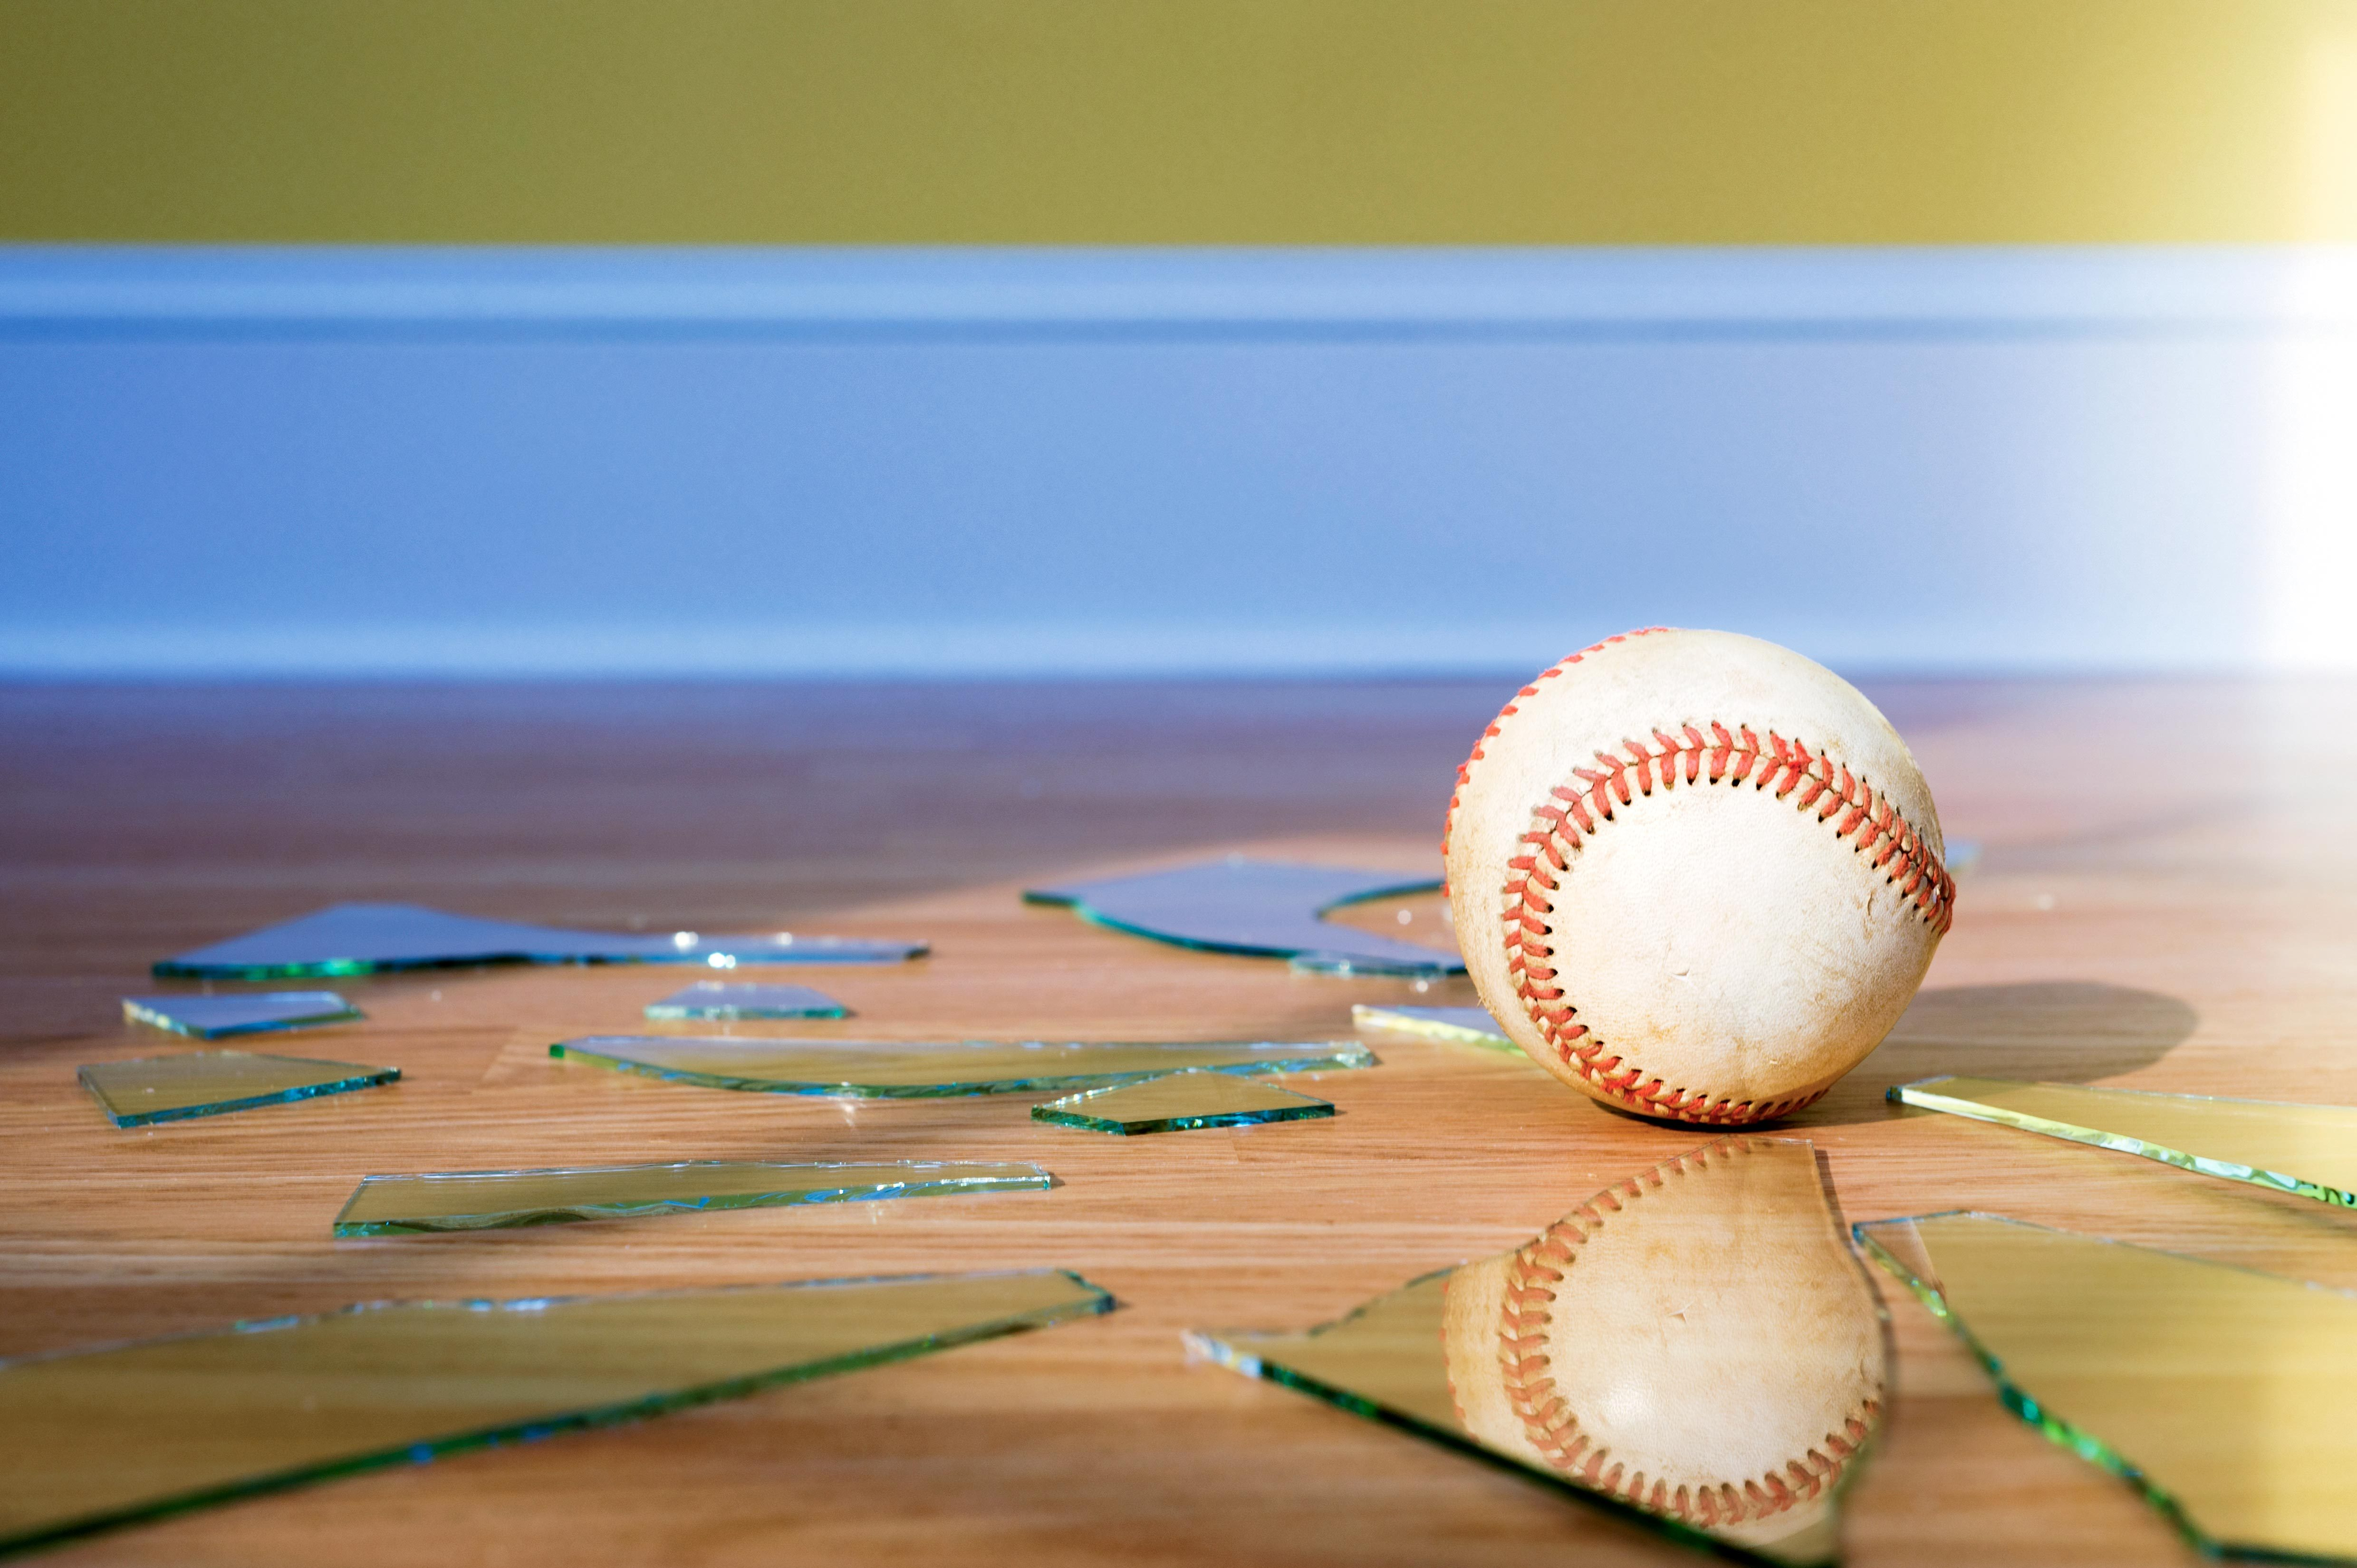 baseball on the floor among broken shards of glass